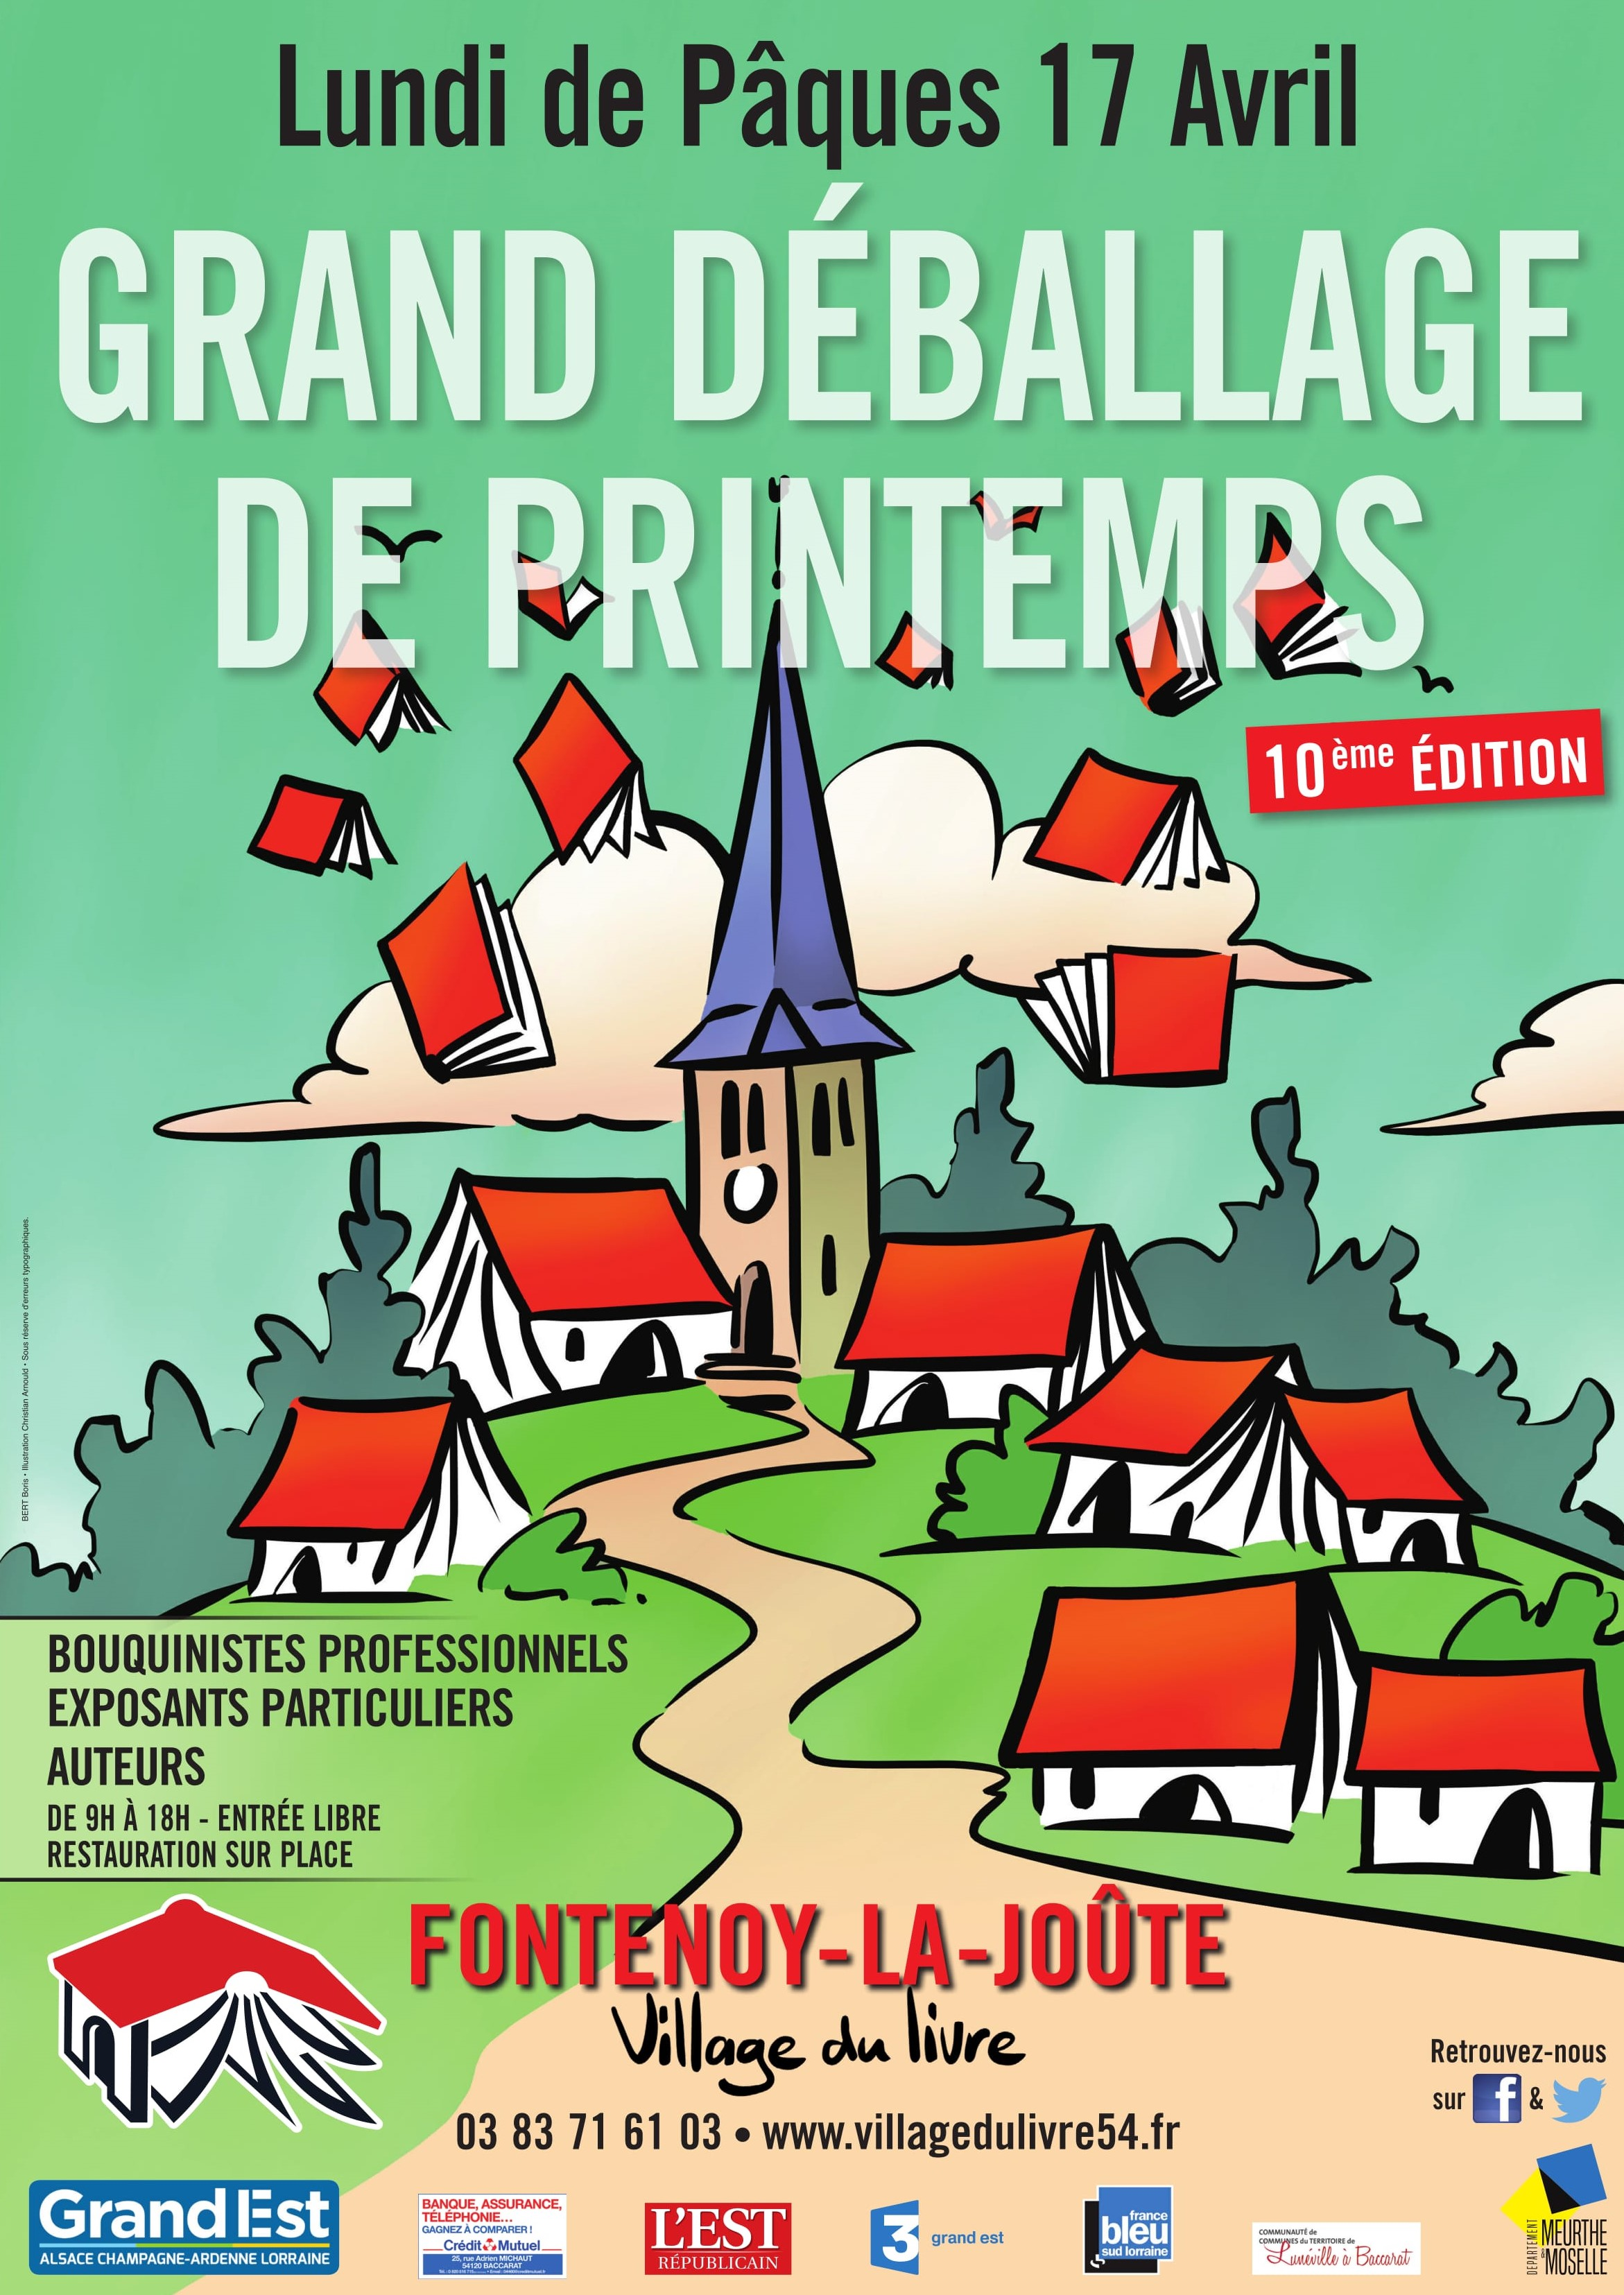 Grand Déballage de Printemps – Lundi de Pâques 17 avril